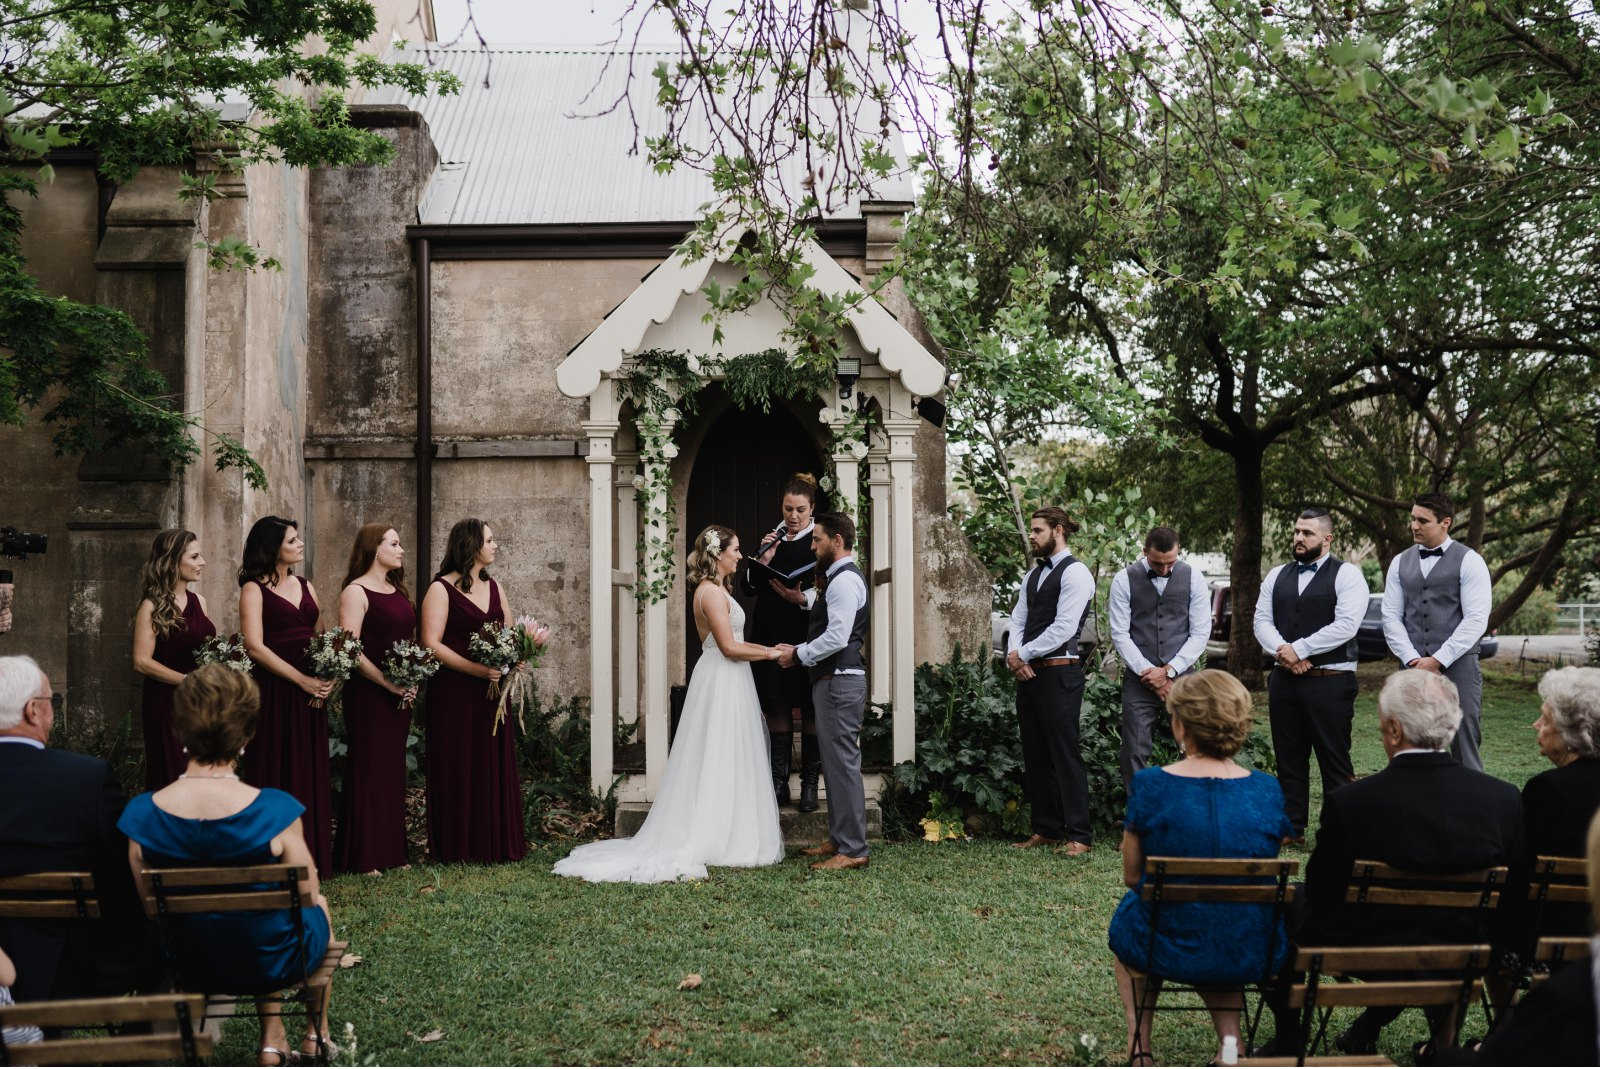 scone-wedding-photographer-upper-hunter-valley-26